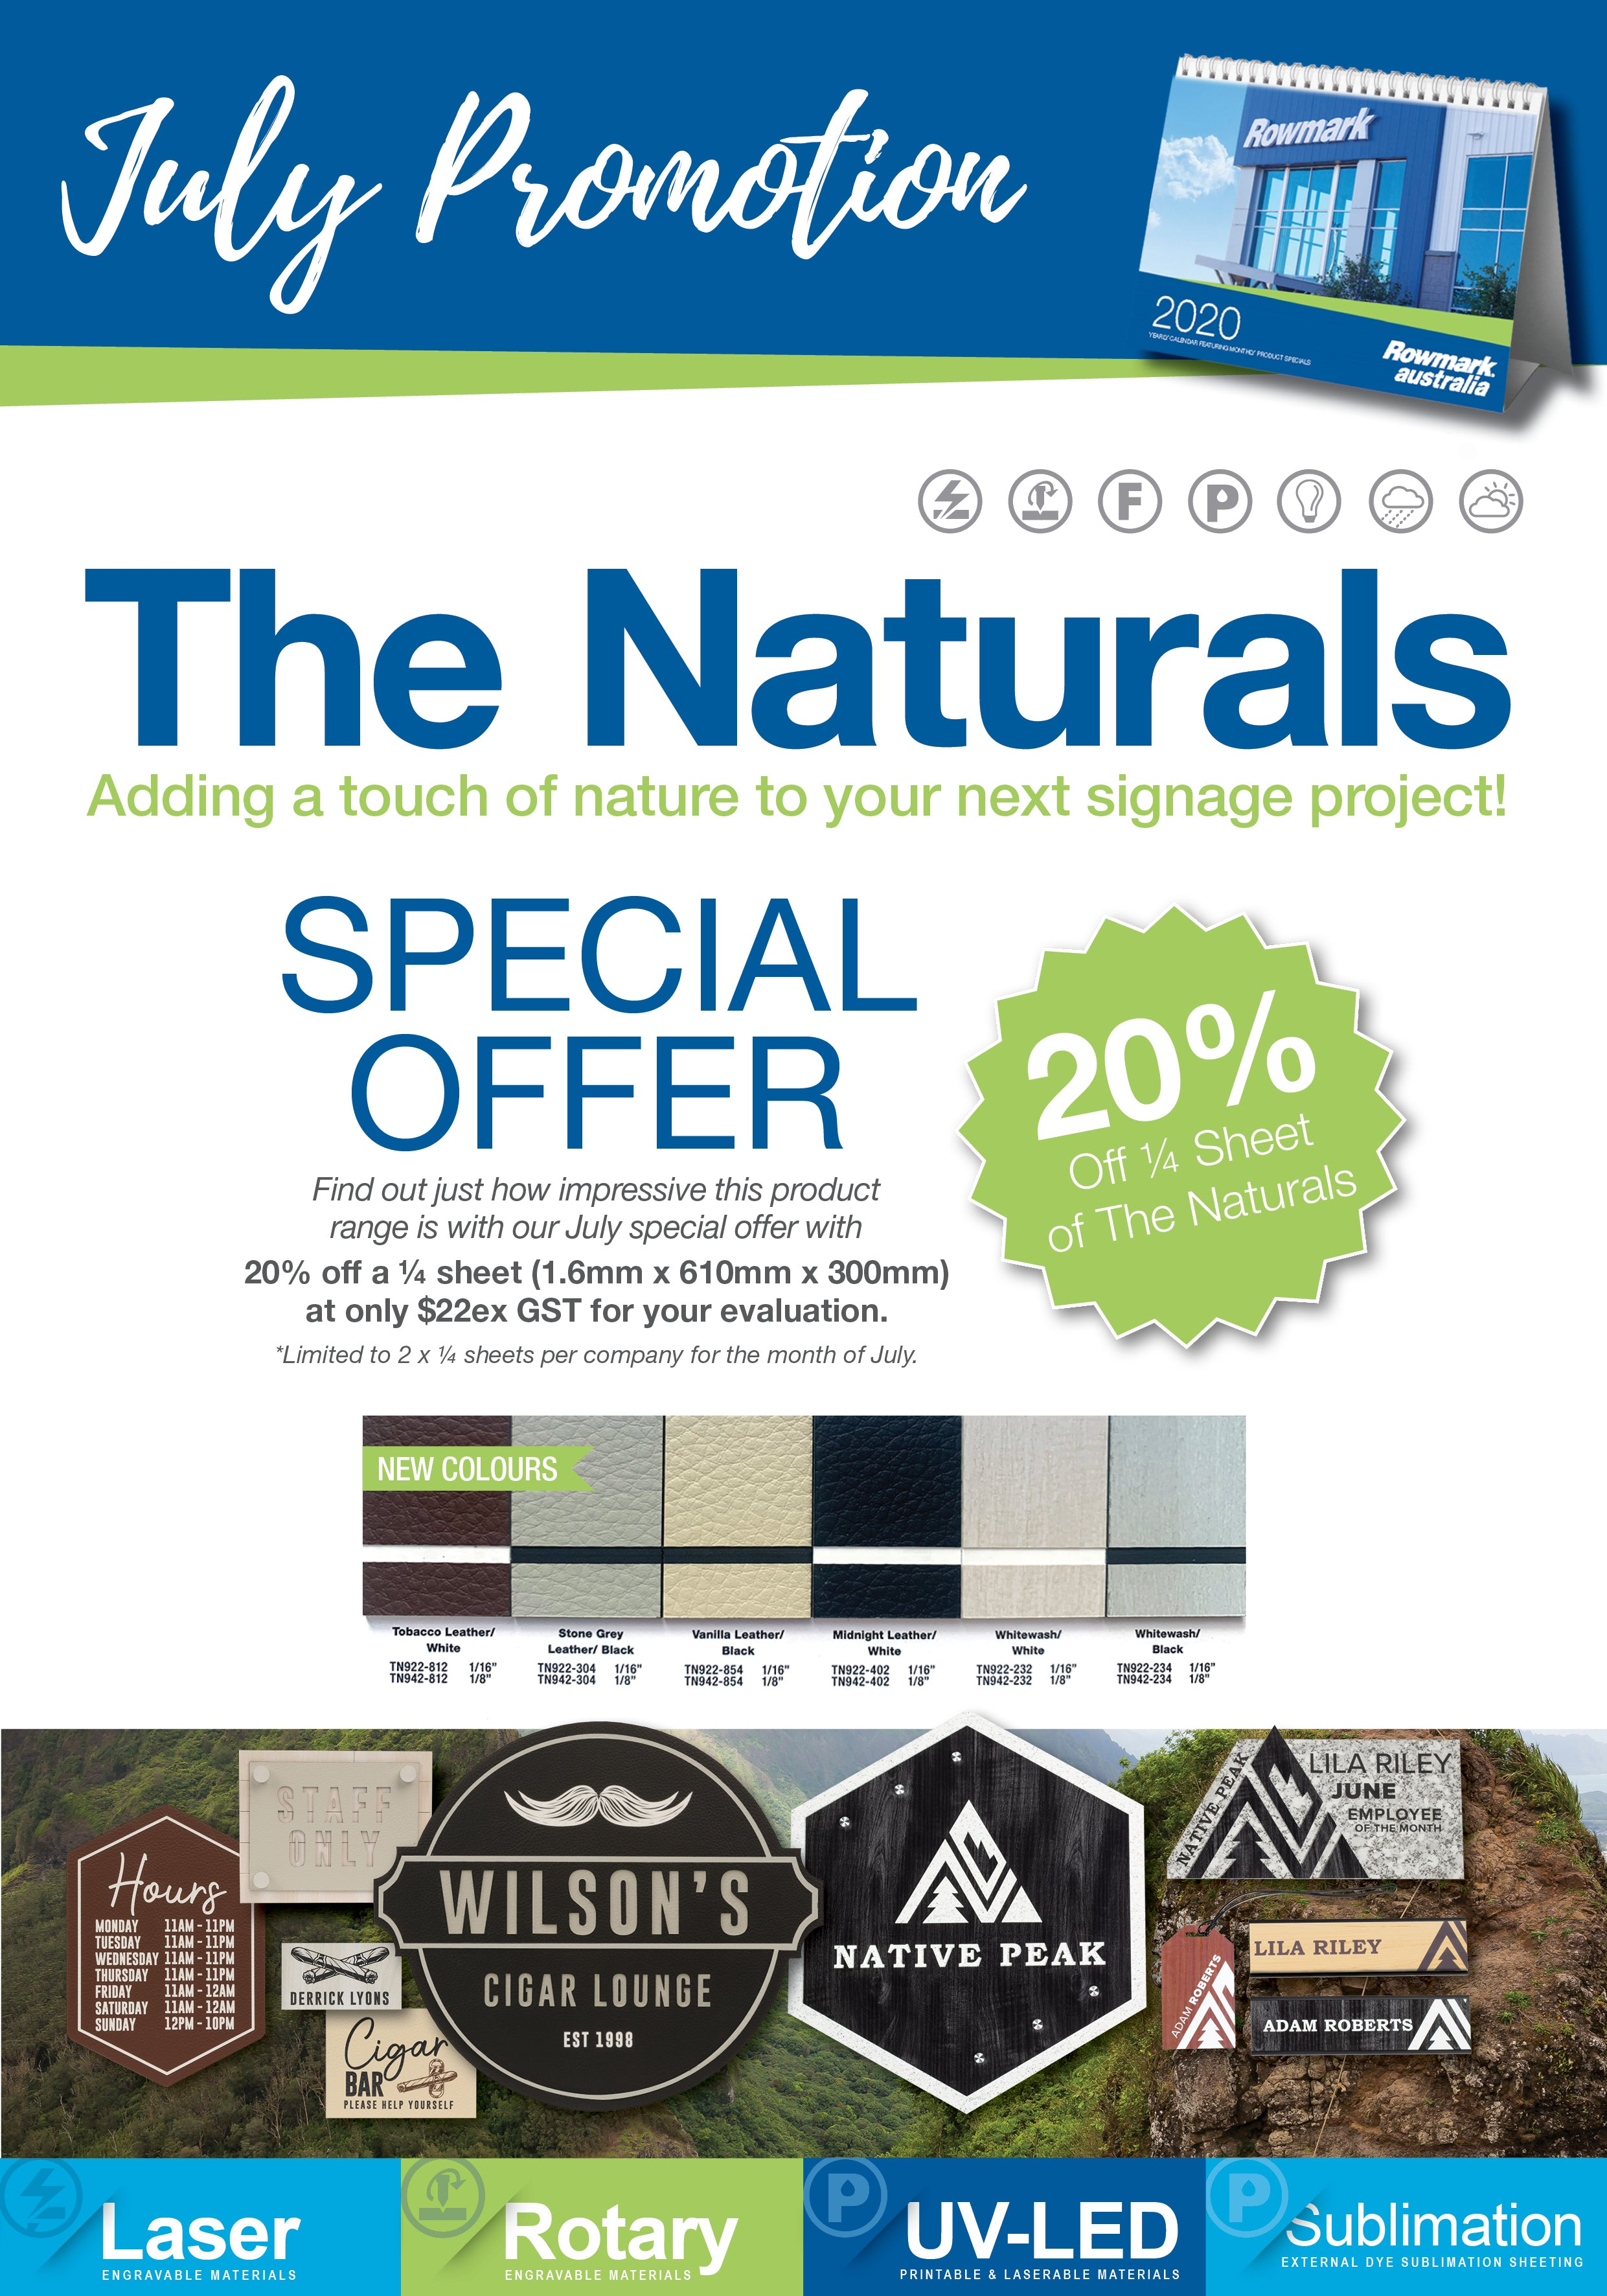 Rowmark Australia July 2020 Promotion - The Naturals